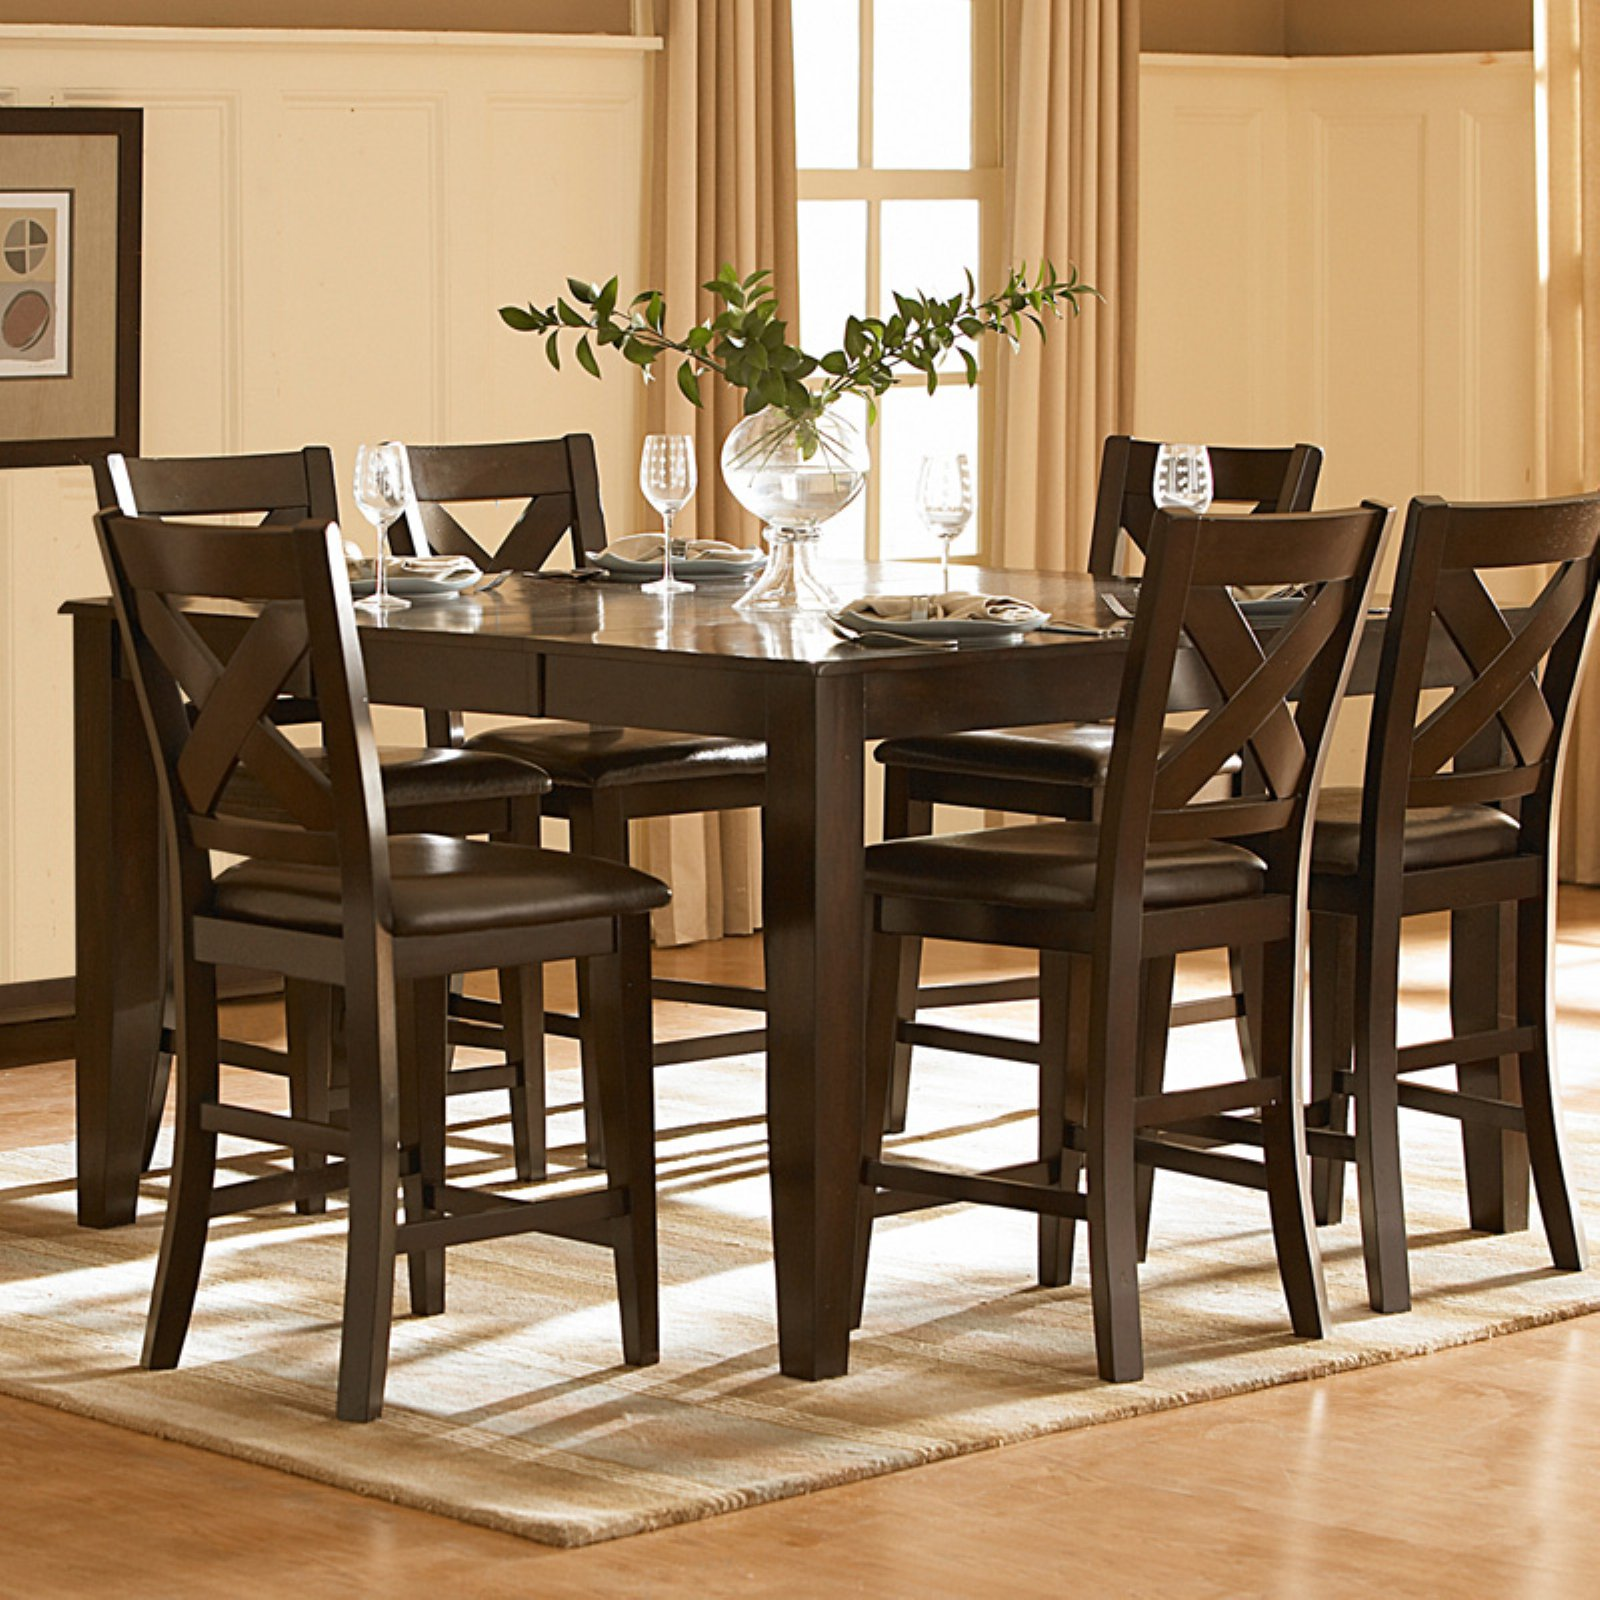 """Weston Home Square Counter Height Table with 18"""" Butterfly Leaf, Warm Merlot"""